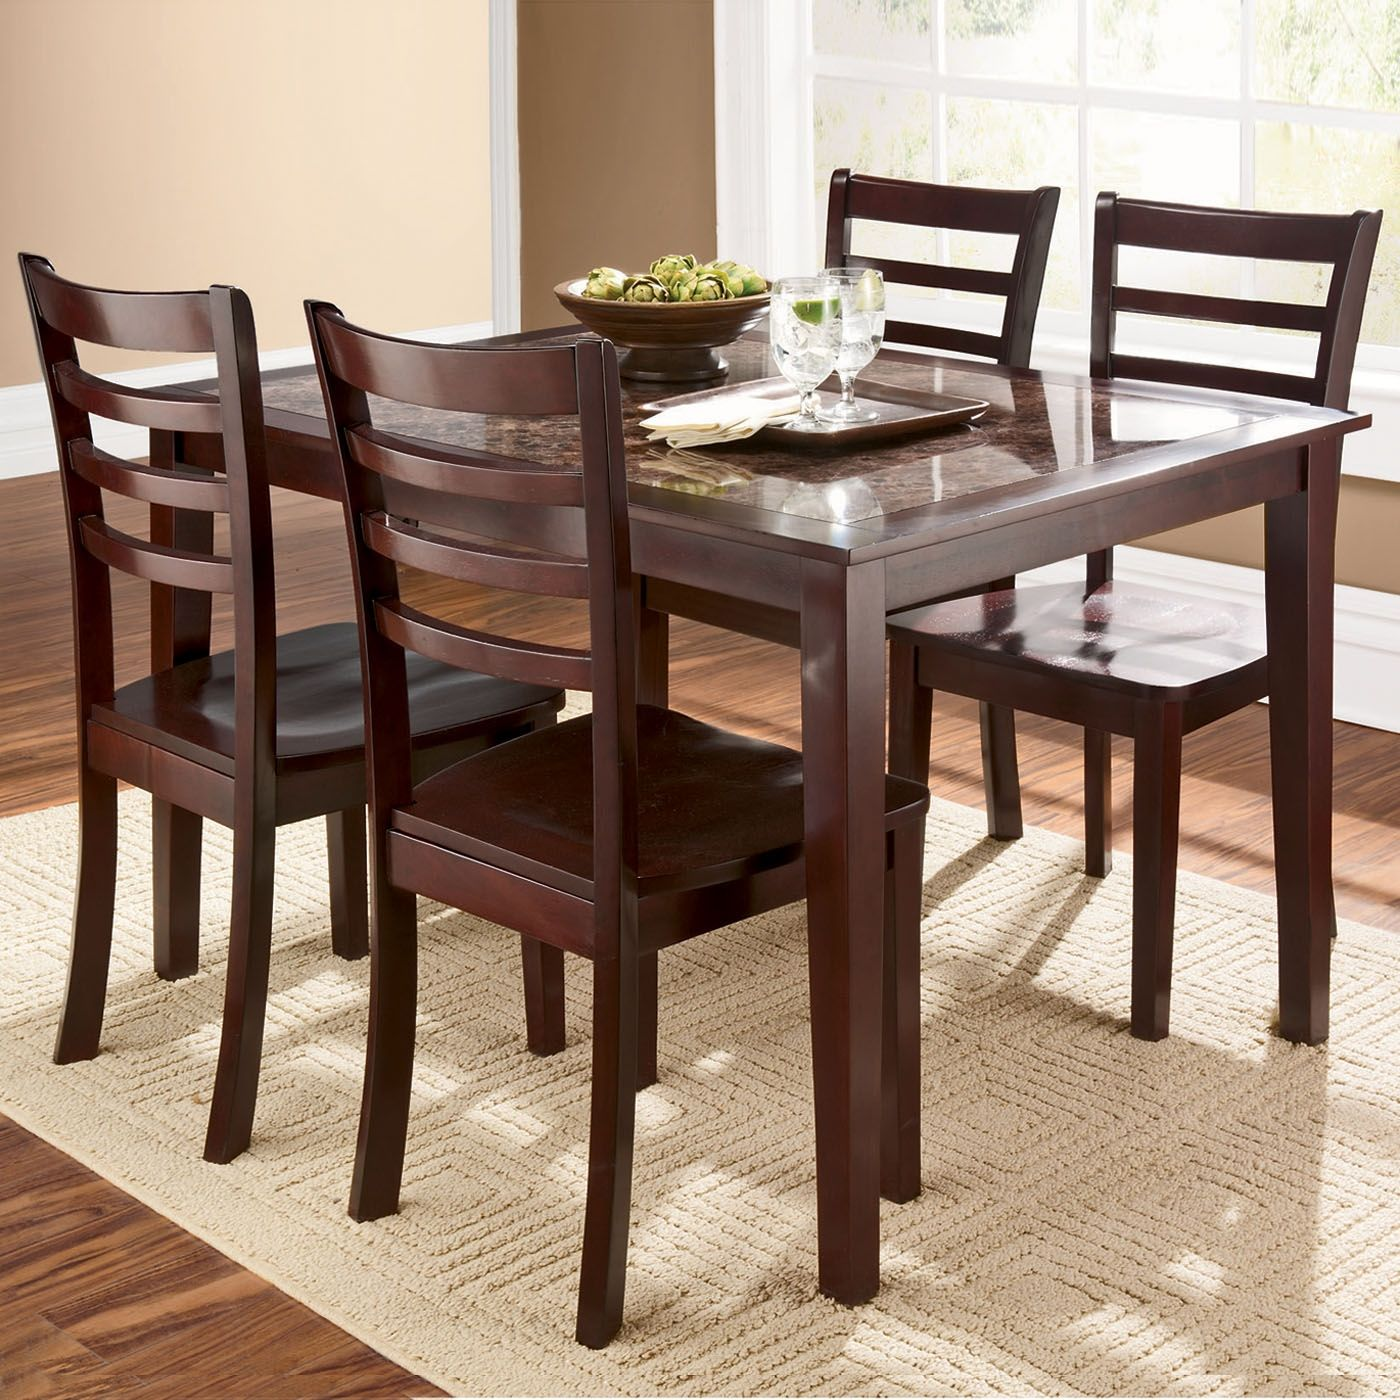 Shopko Kitchen Tables Dining tables chairs cascade faux marble 5 piece dining set dining room furniture kitchen table and chairs workwithnaturefo